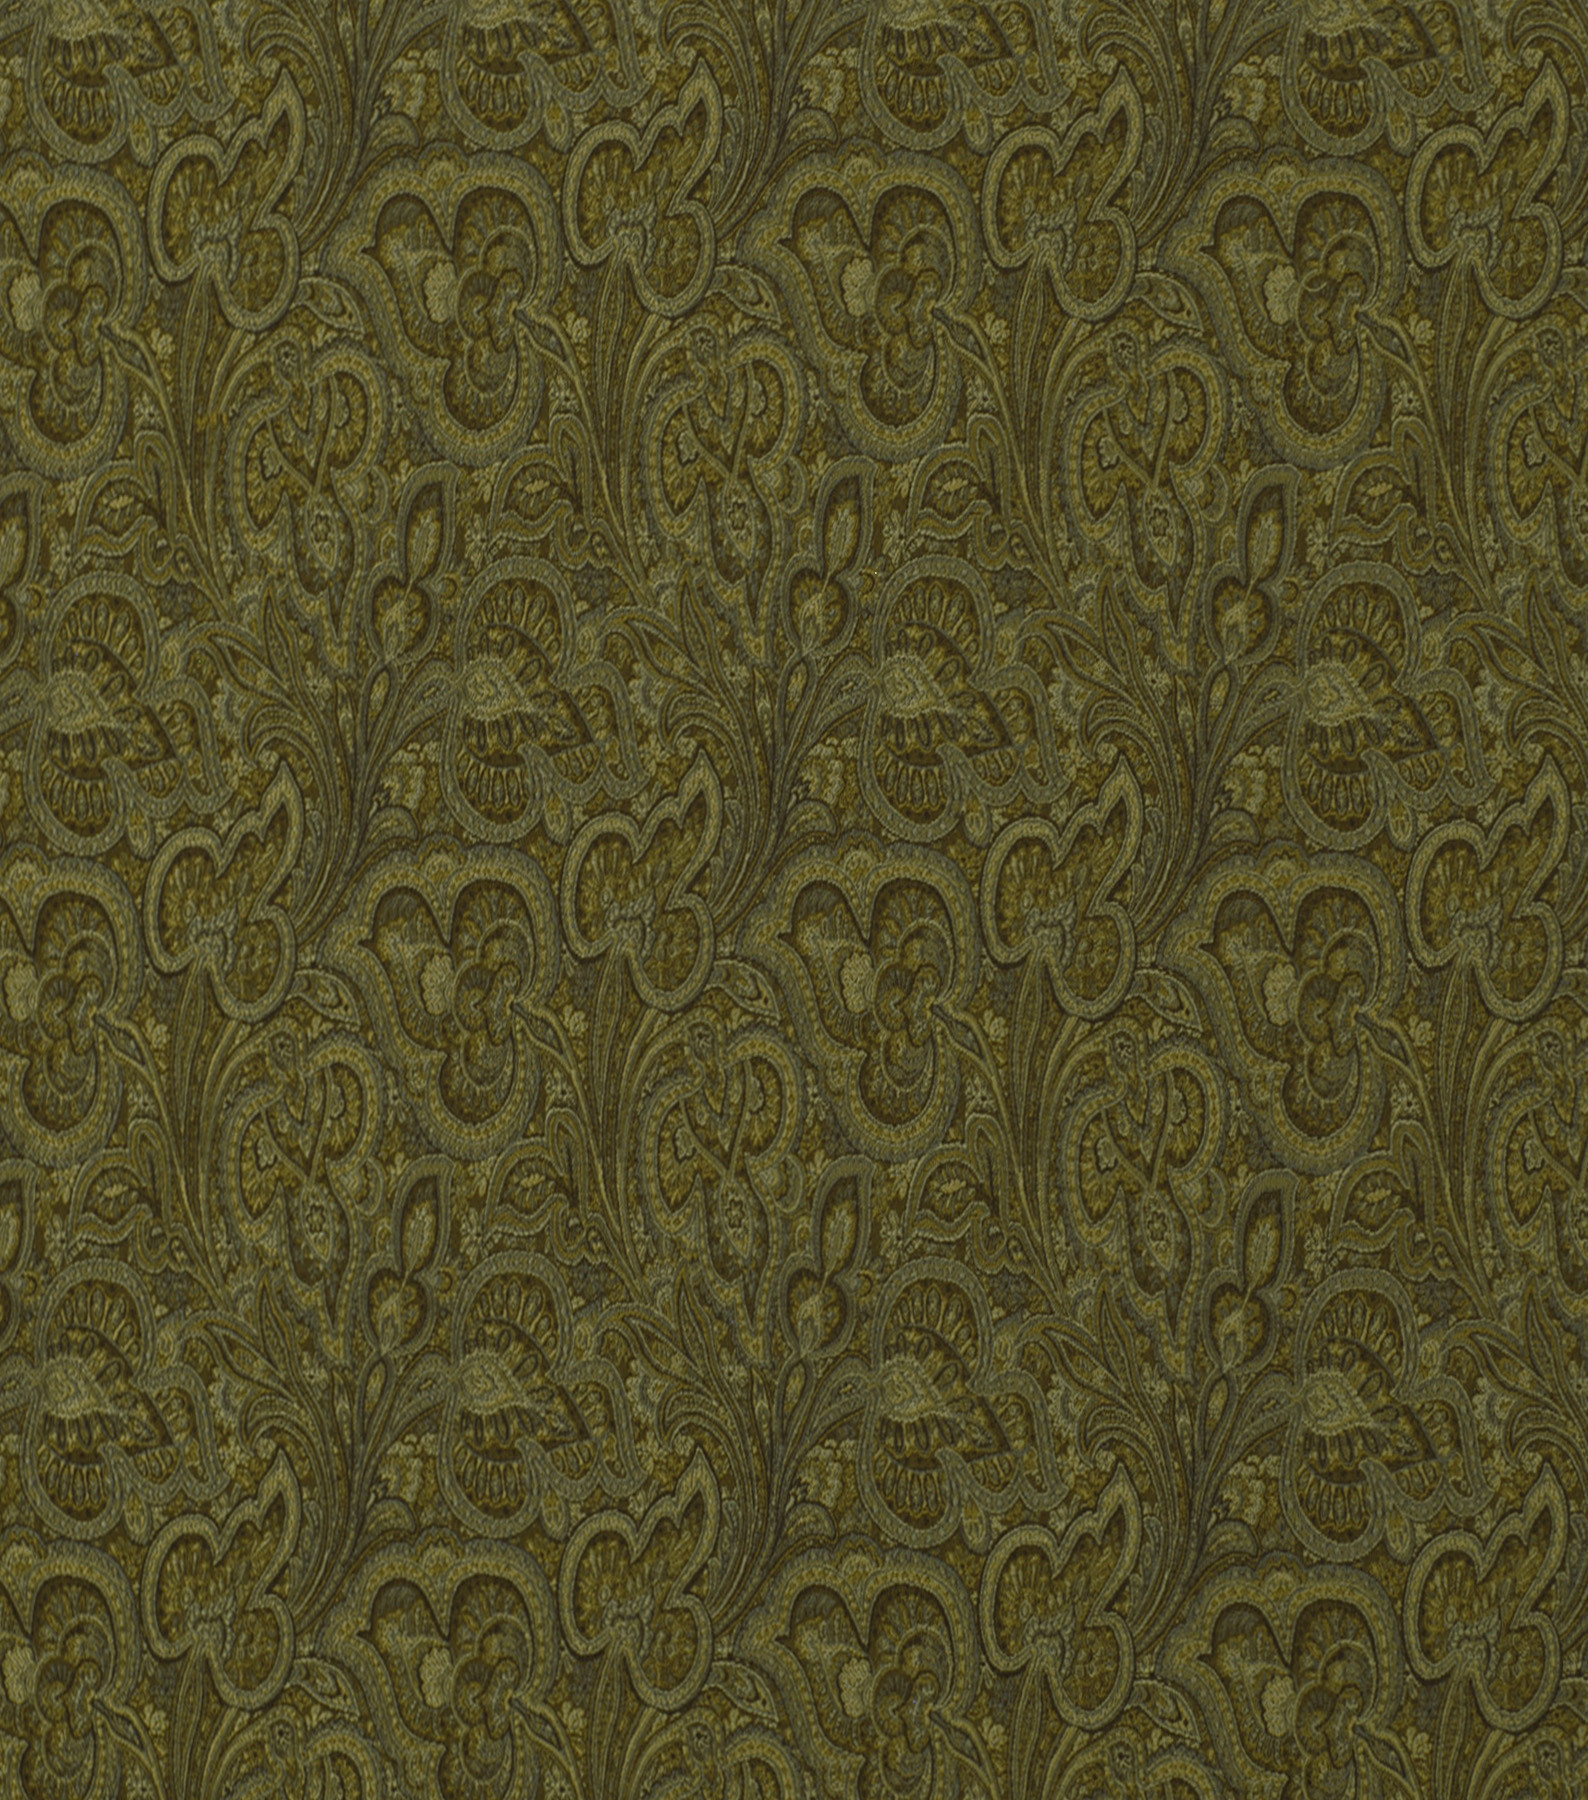 Home Decor 8\u0022x8\u0022 Fabric Swatch-Solid Fabric Robert Allen Paisley Fleur Nutmeg